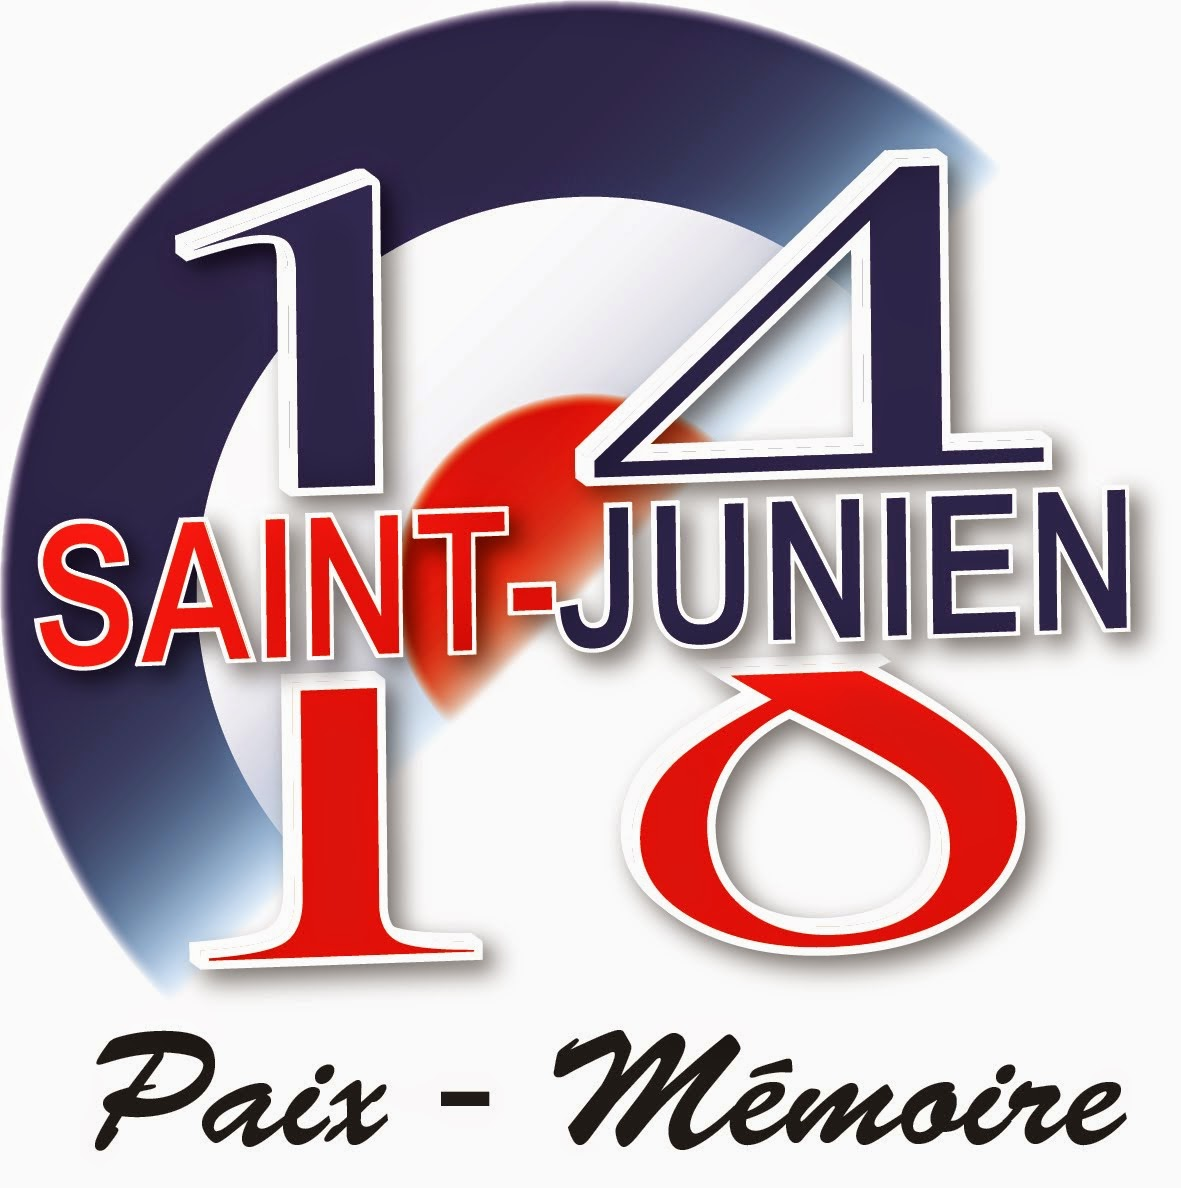 Saint-Junien et le centenaire 14/18